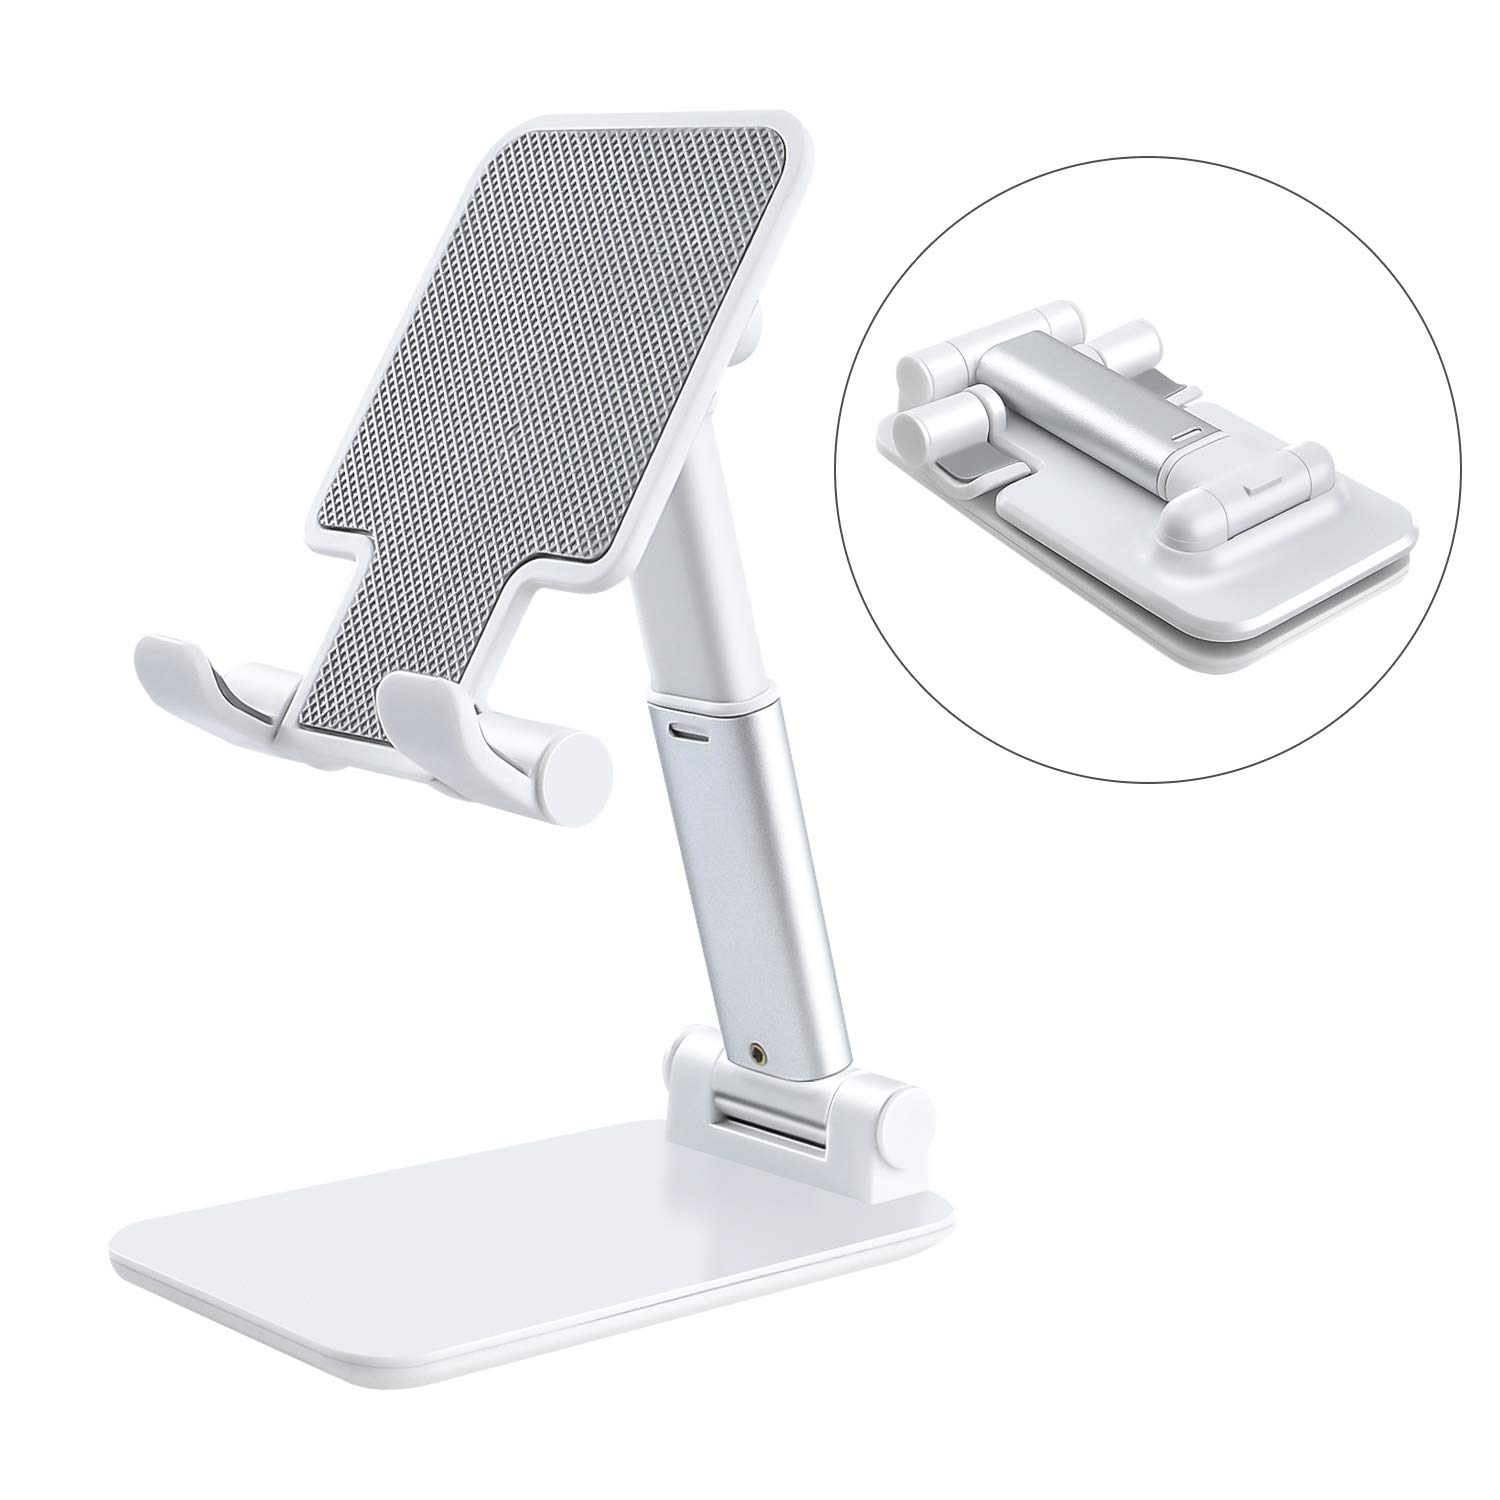 """Adjustable Cell Phone Stand, Fully Foldable and Portable Tablet Stand for Desk, Compatible with iPhone 11 Pro Xs Xs Max Xr X 8, iPad Mini, Nintendo Switch, Tablets (≤7.9""""), All Phones (White)"""